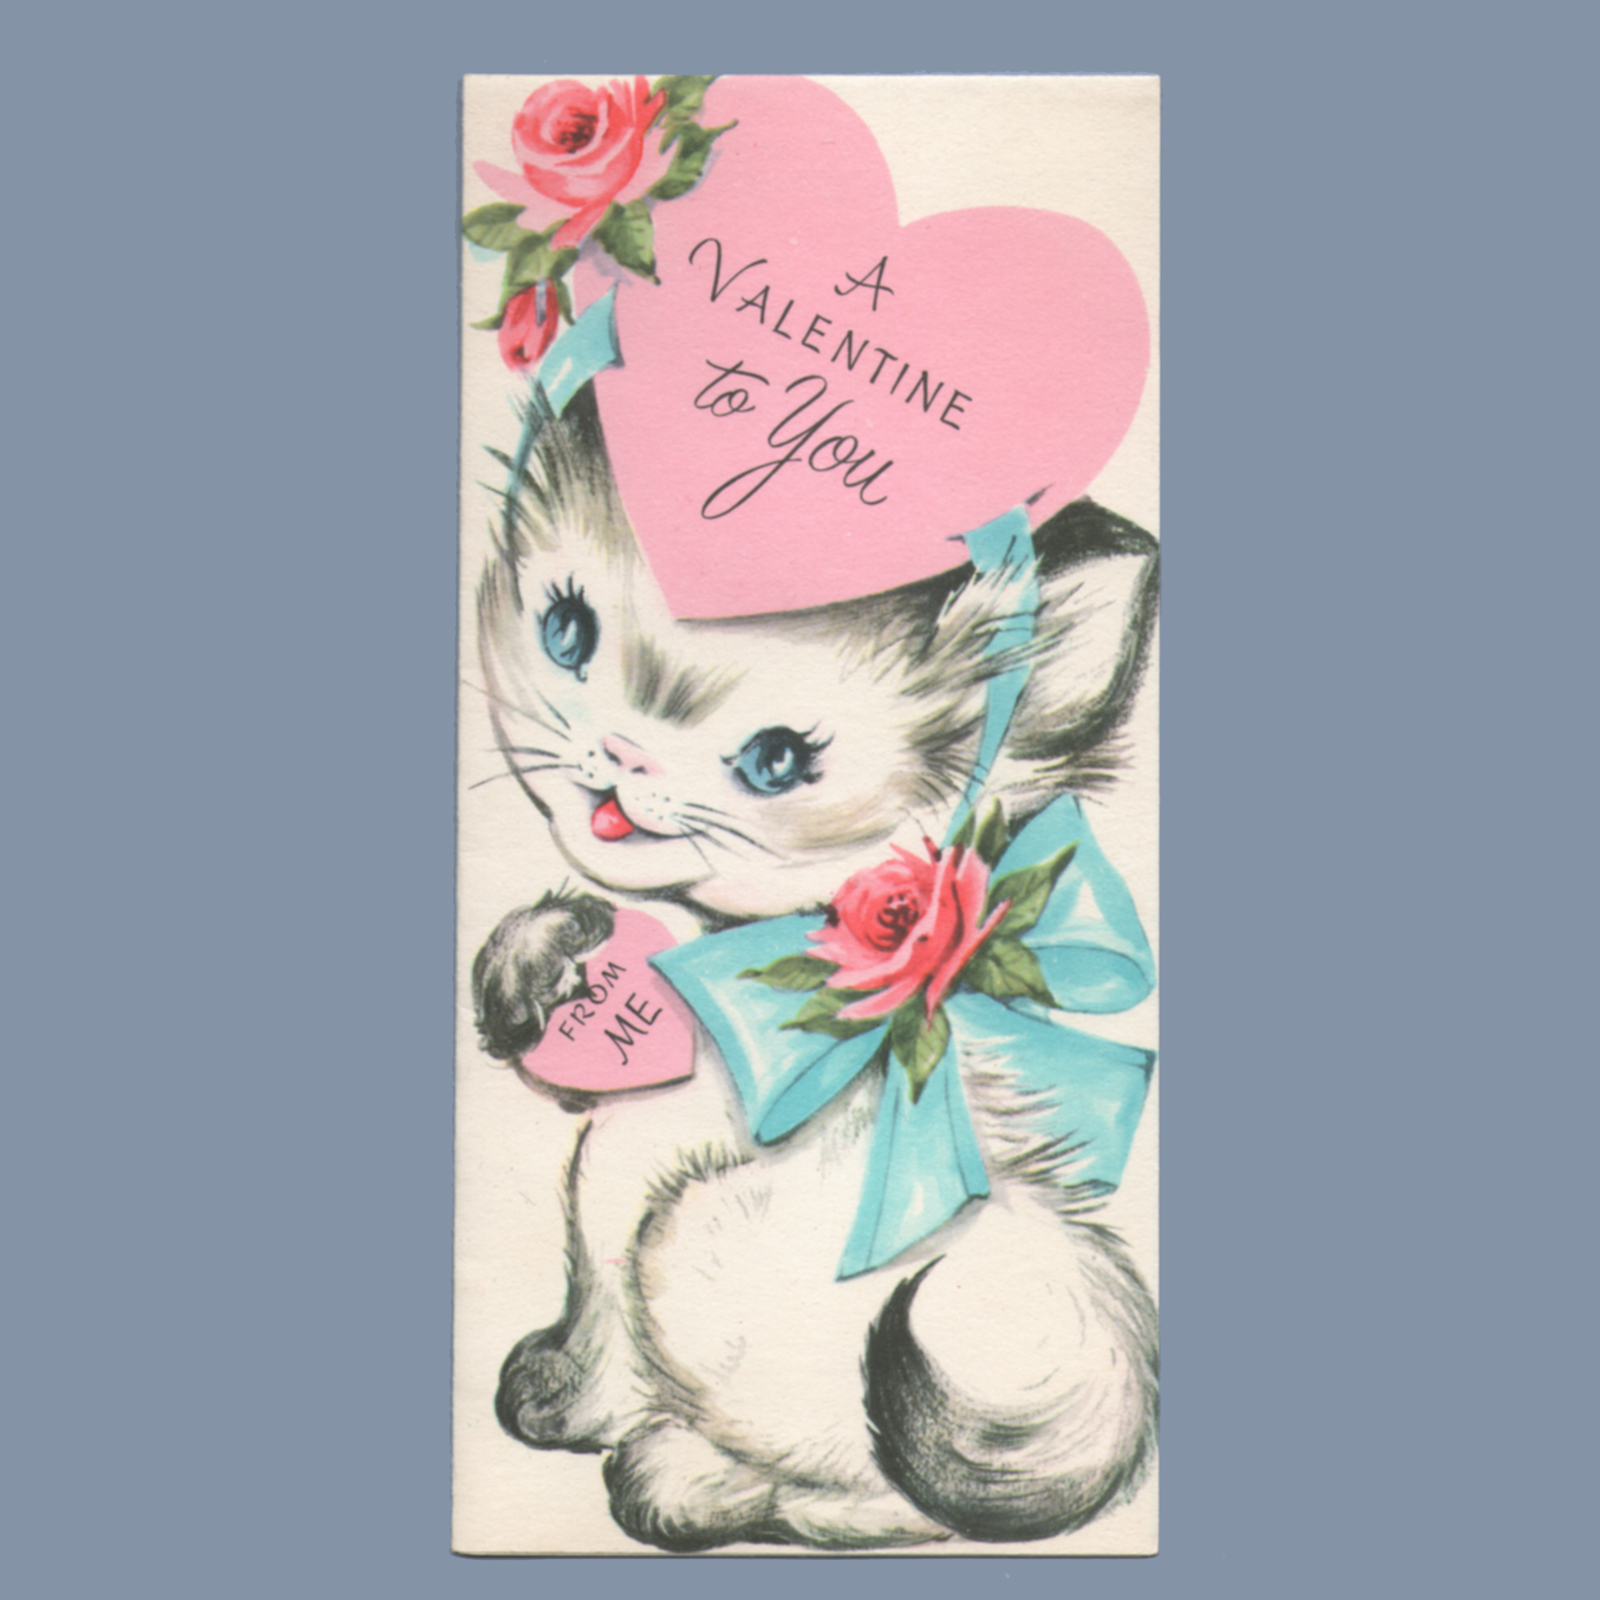 Vintage valentine museum maker gibson art company gibson we have many more gibson cards in our other categories enter gibson in the search box in the upper left to see them all m4hsunfo Choice Image